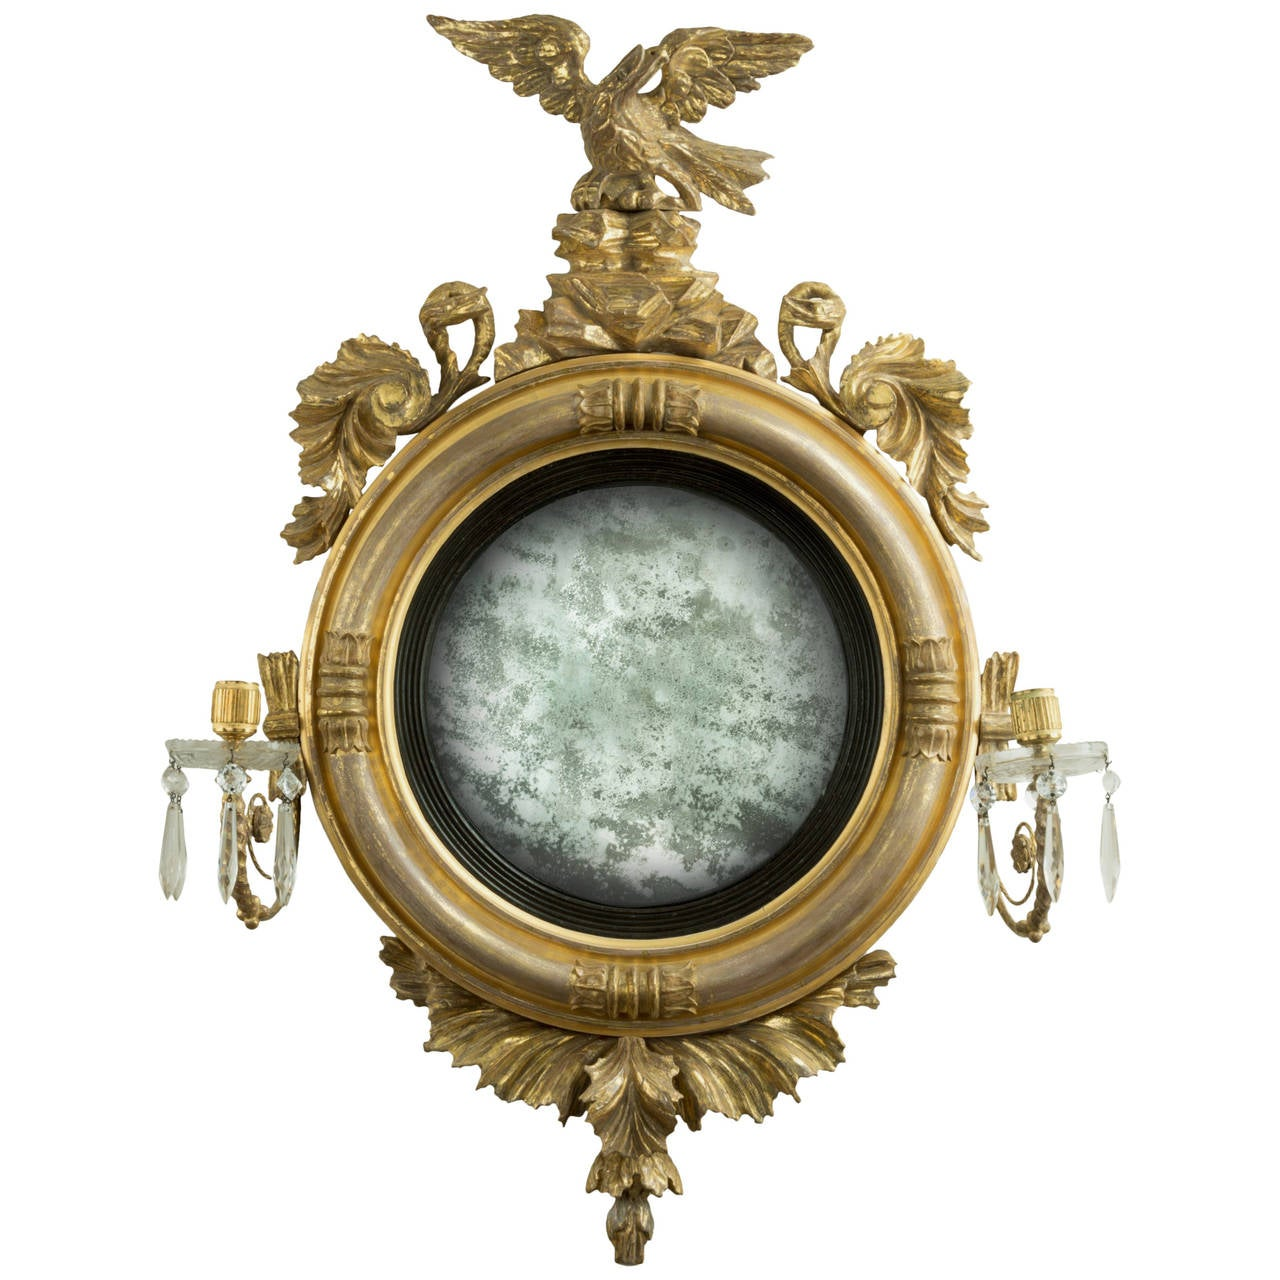 Regency convex mirror for sale at 1stdibs for Convex mirror